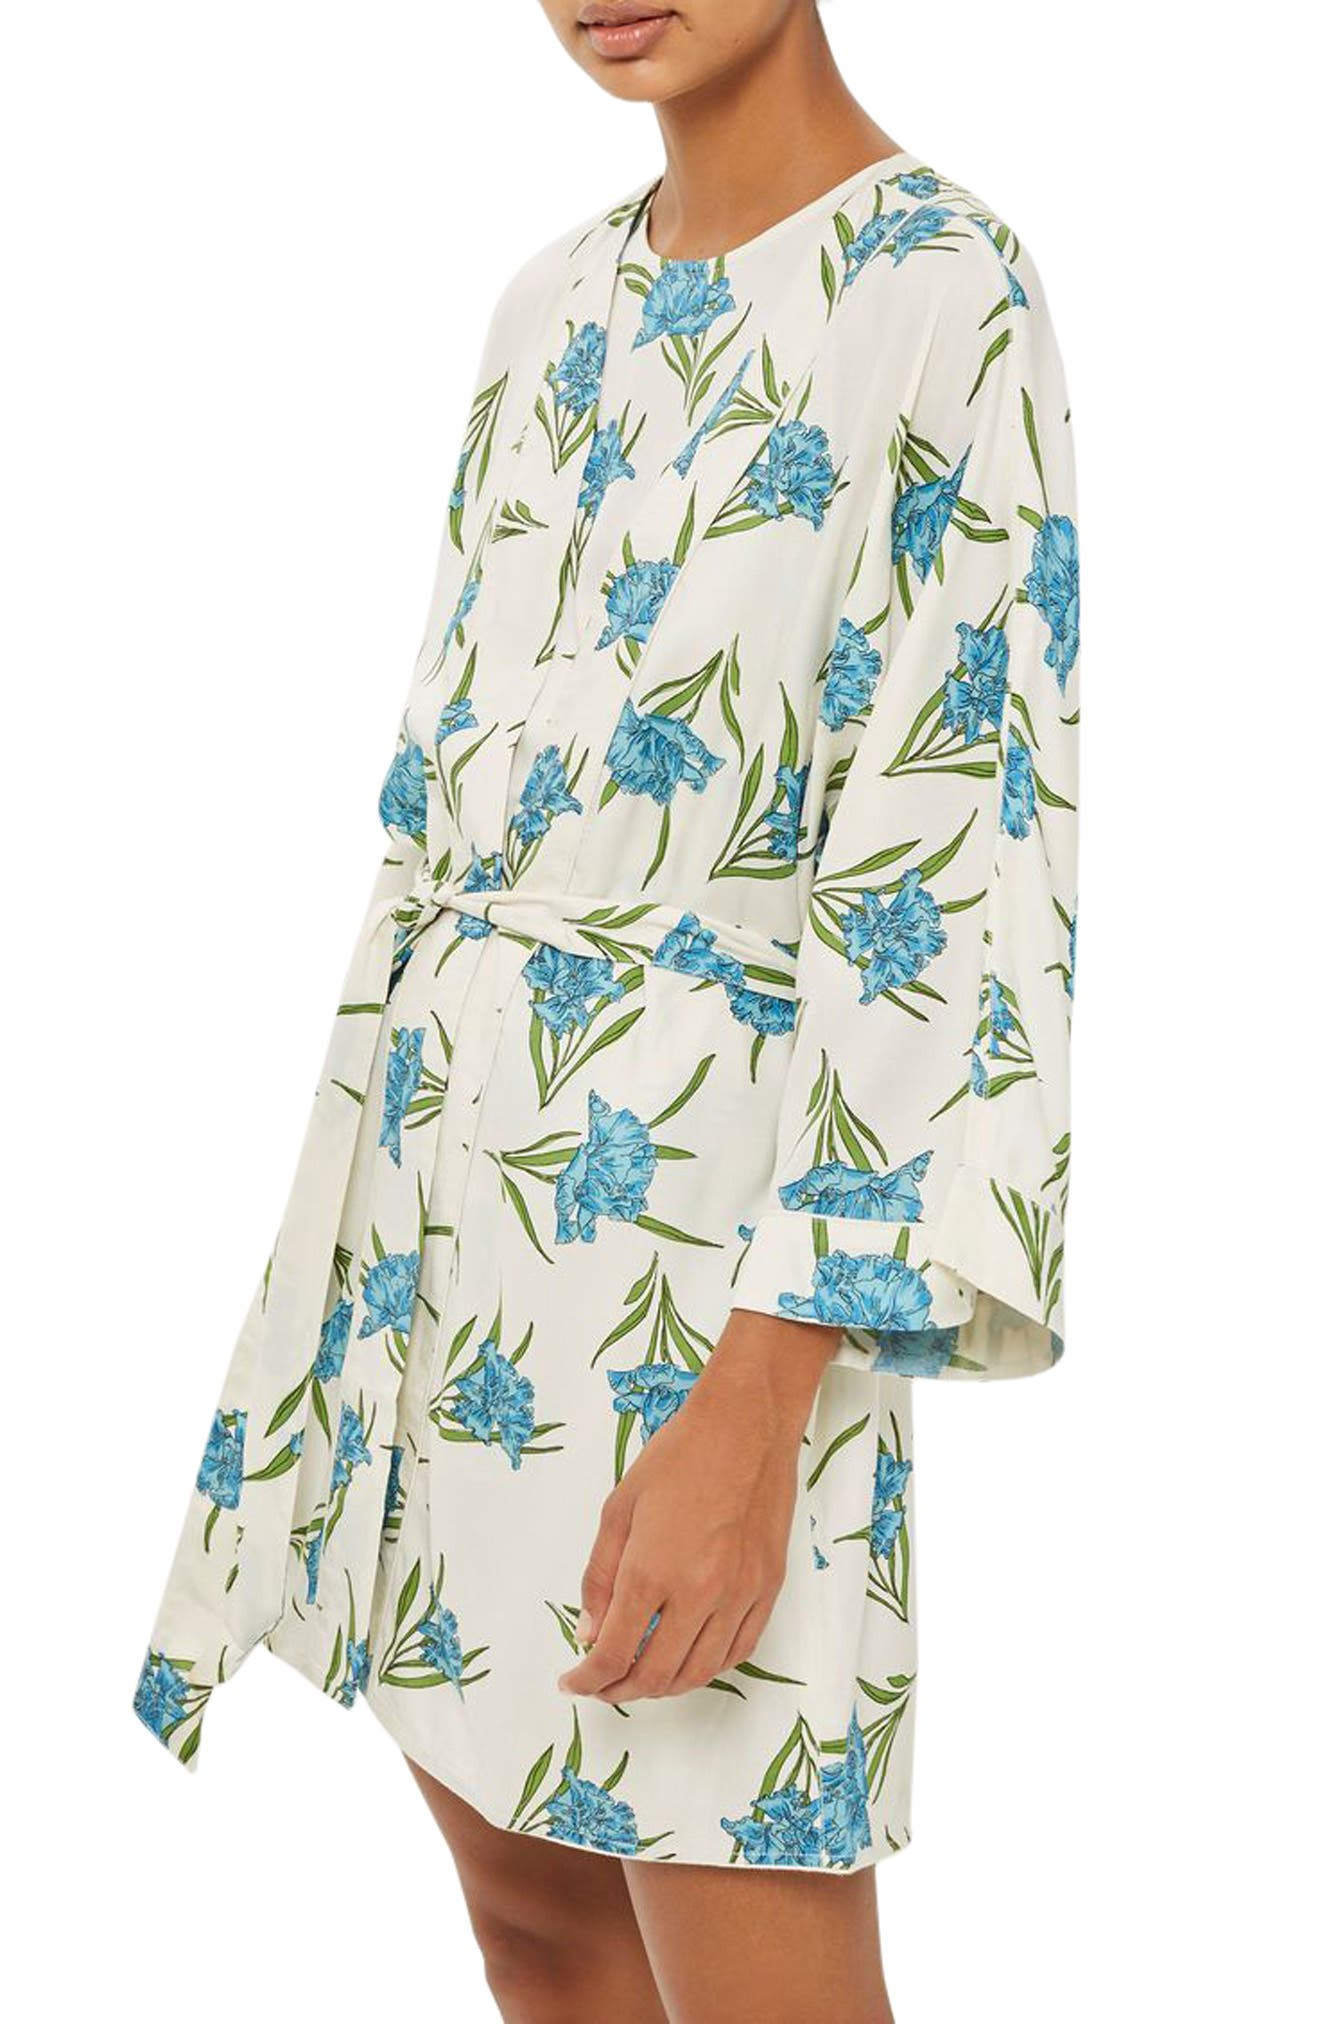 Topshop Botanical Print Short Robe